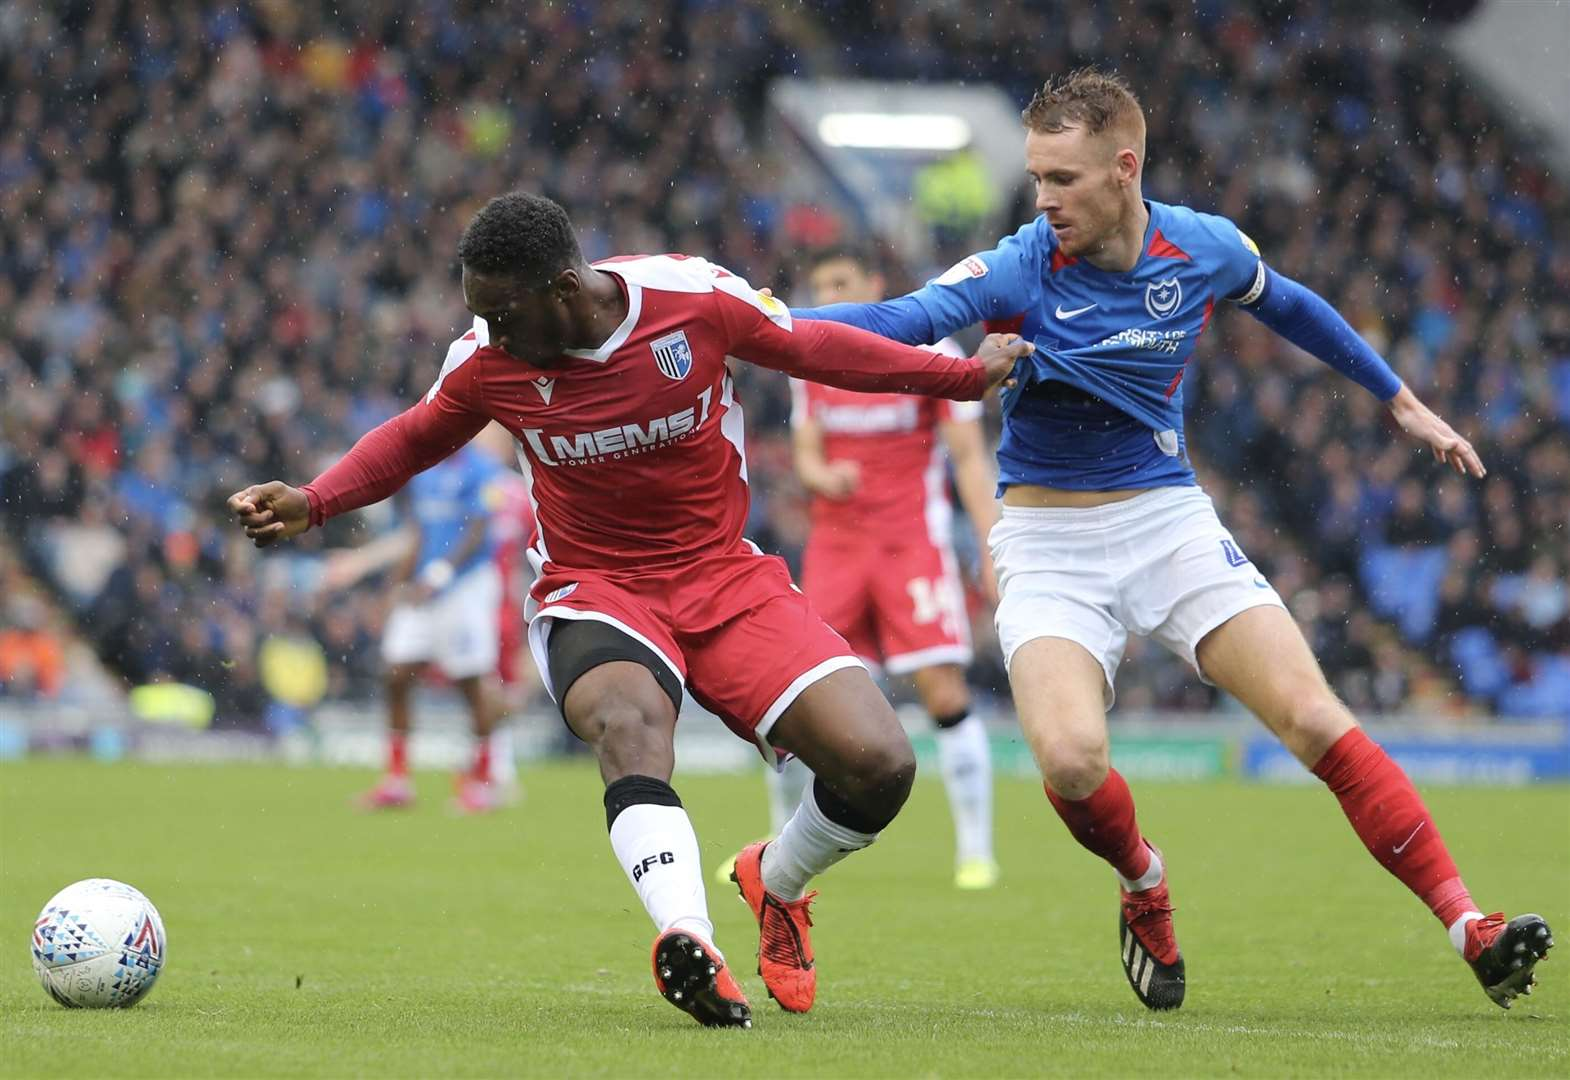 Report: Portsmouth left frustrated by Gills' resolve